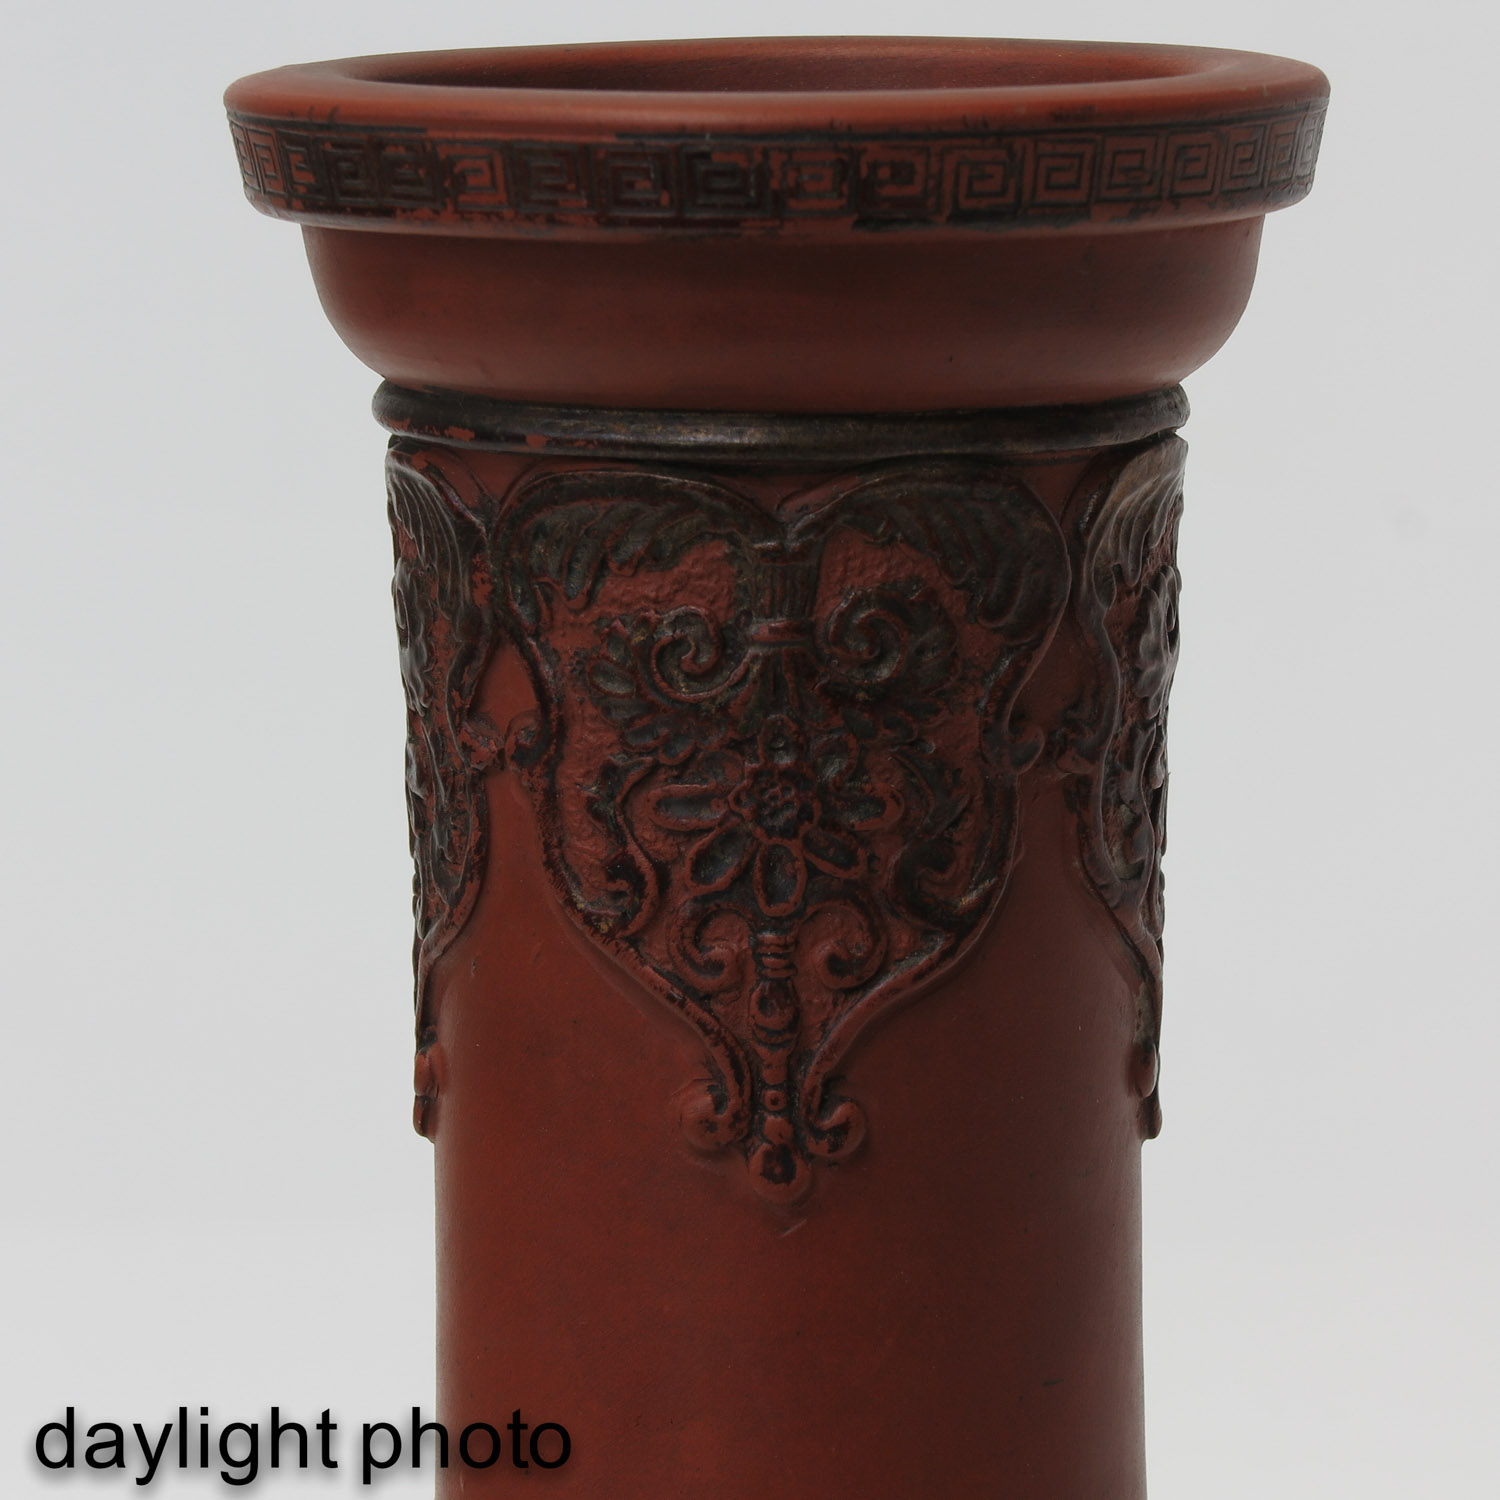 A Pair of Stoneware Vases - Image 10 of 10